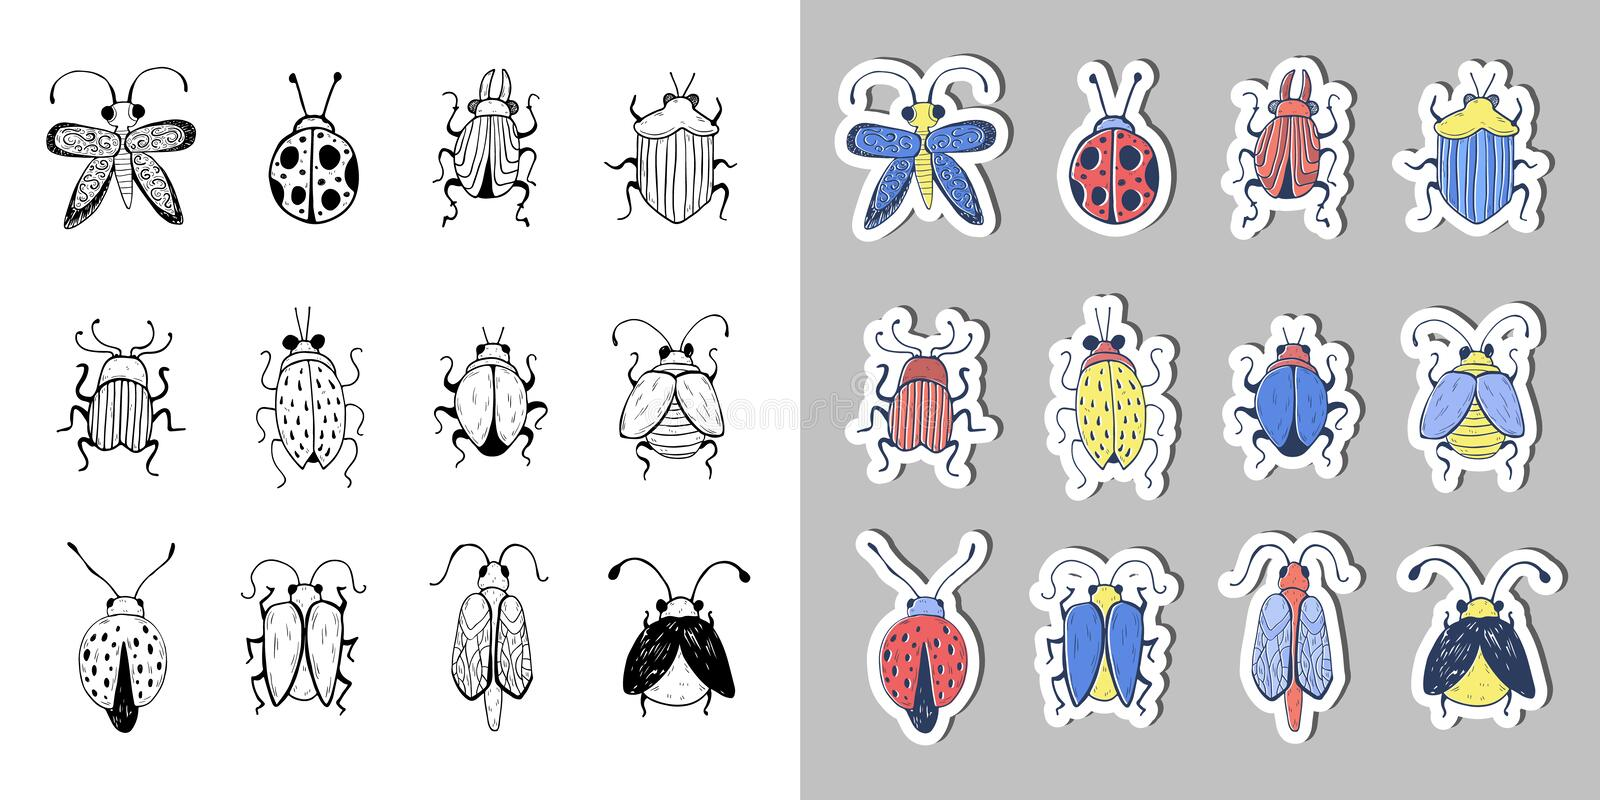 Hand drawn Insect Sketch Sticker Set. Design for handmade decorative brooch. Hand drawn Insect Sketch. Design for handmade decorative brooch. Can be used for stock illustration